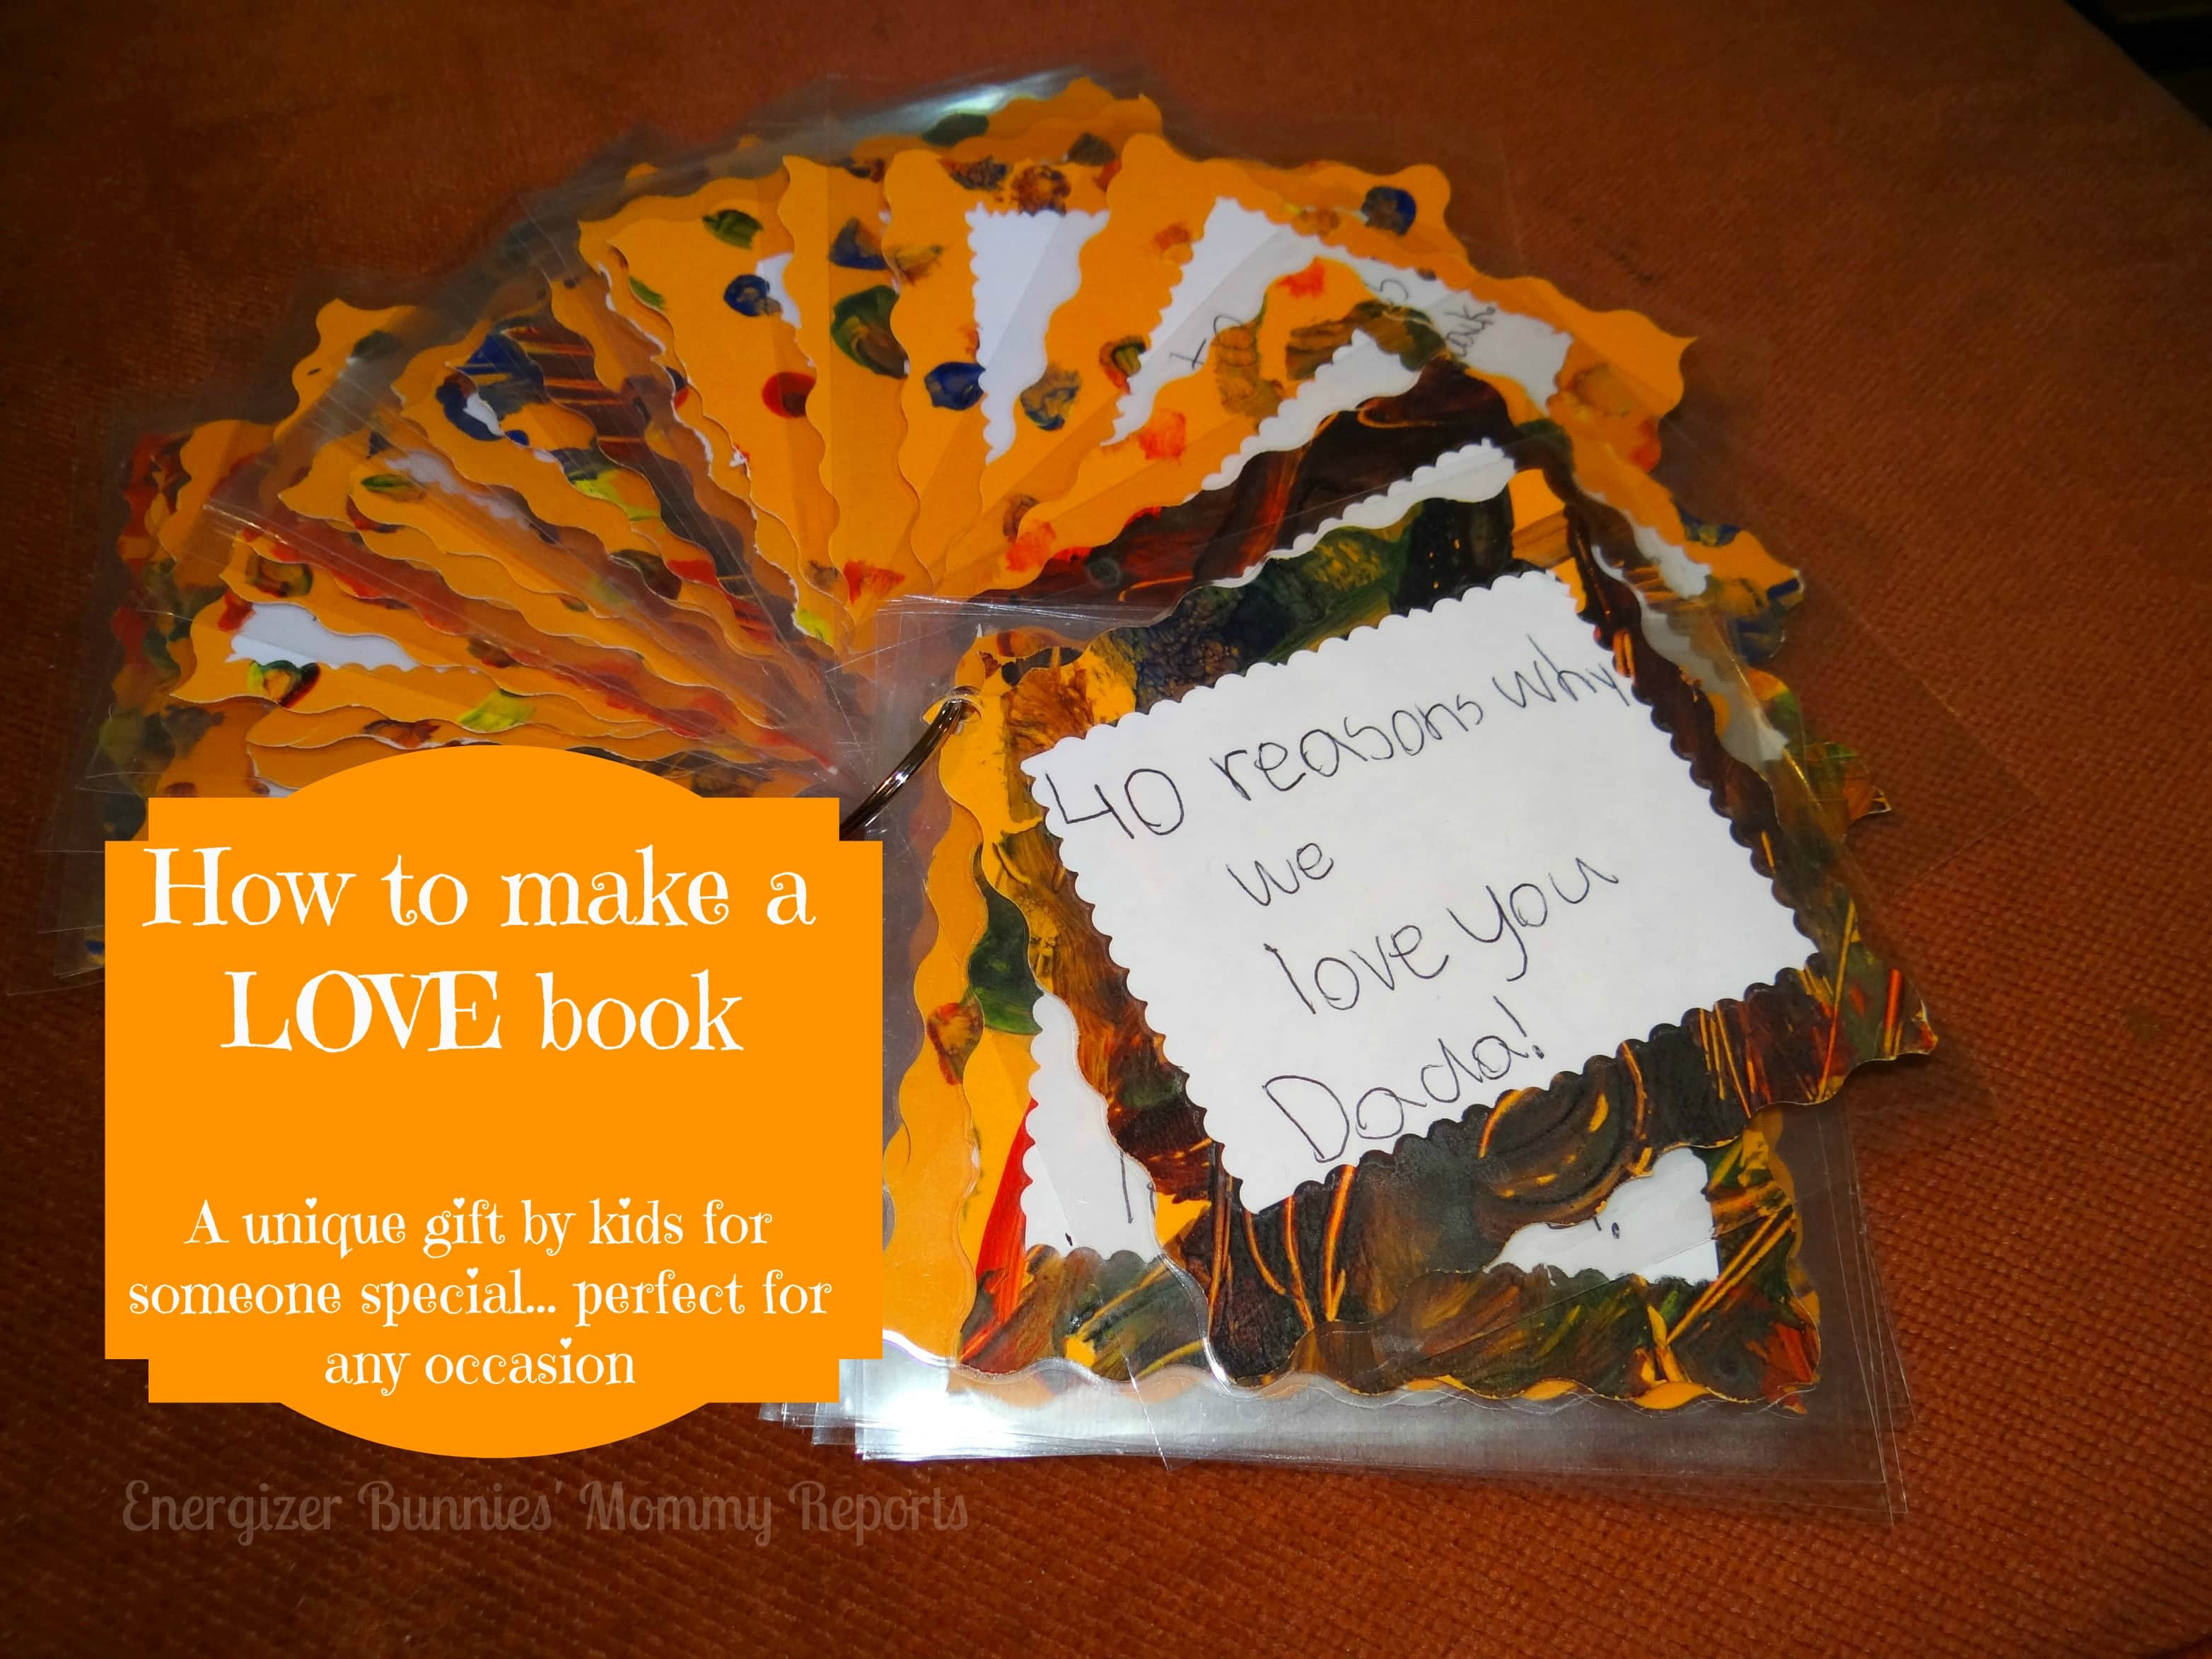 How To Make A LOVE Book